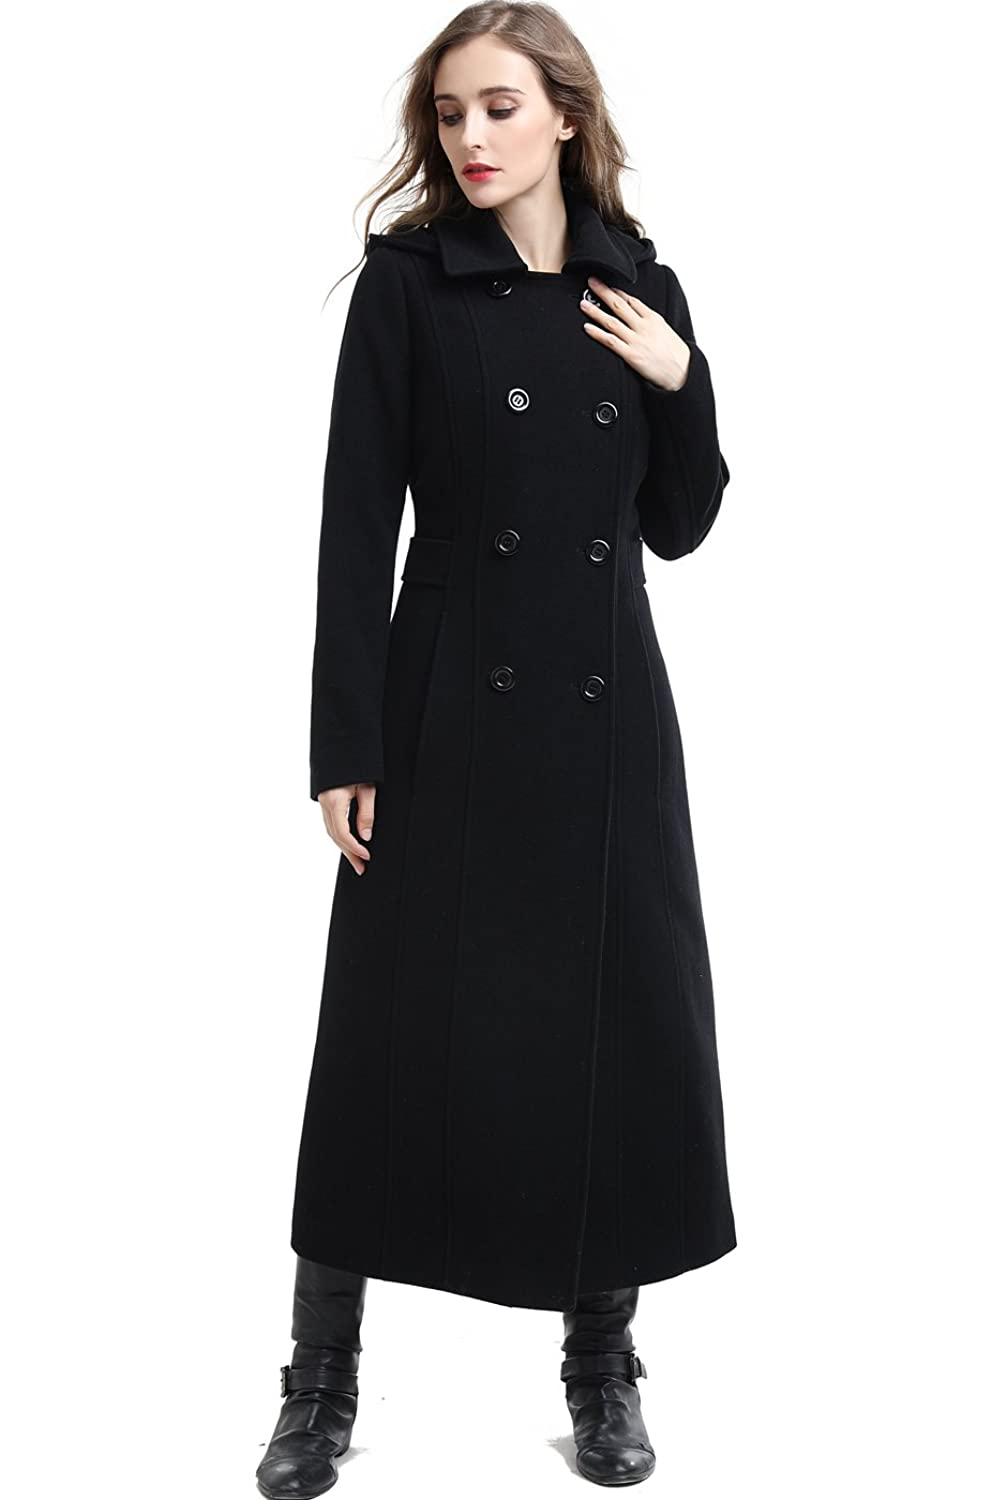 1930s Style Coats, Jackets | Art Deco Outerwear BGSD Womens Mariel Wool Blend Hooded Long Coat $169.00 AT vintagedancer.com